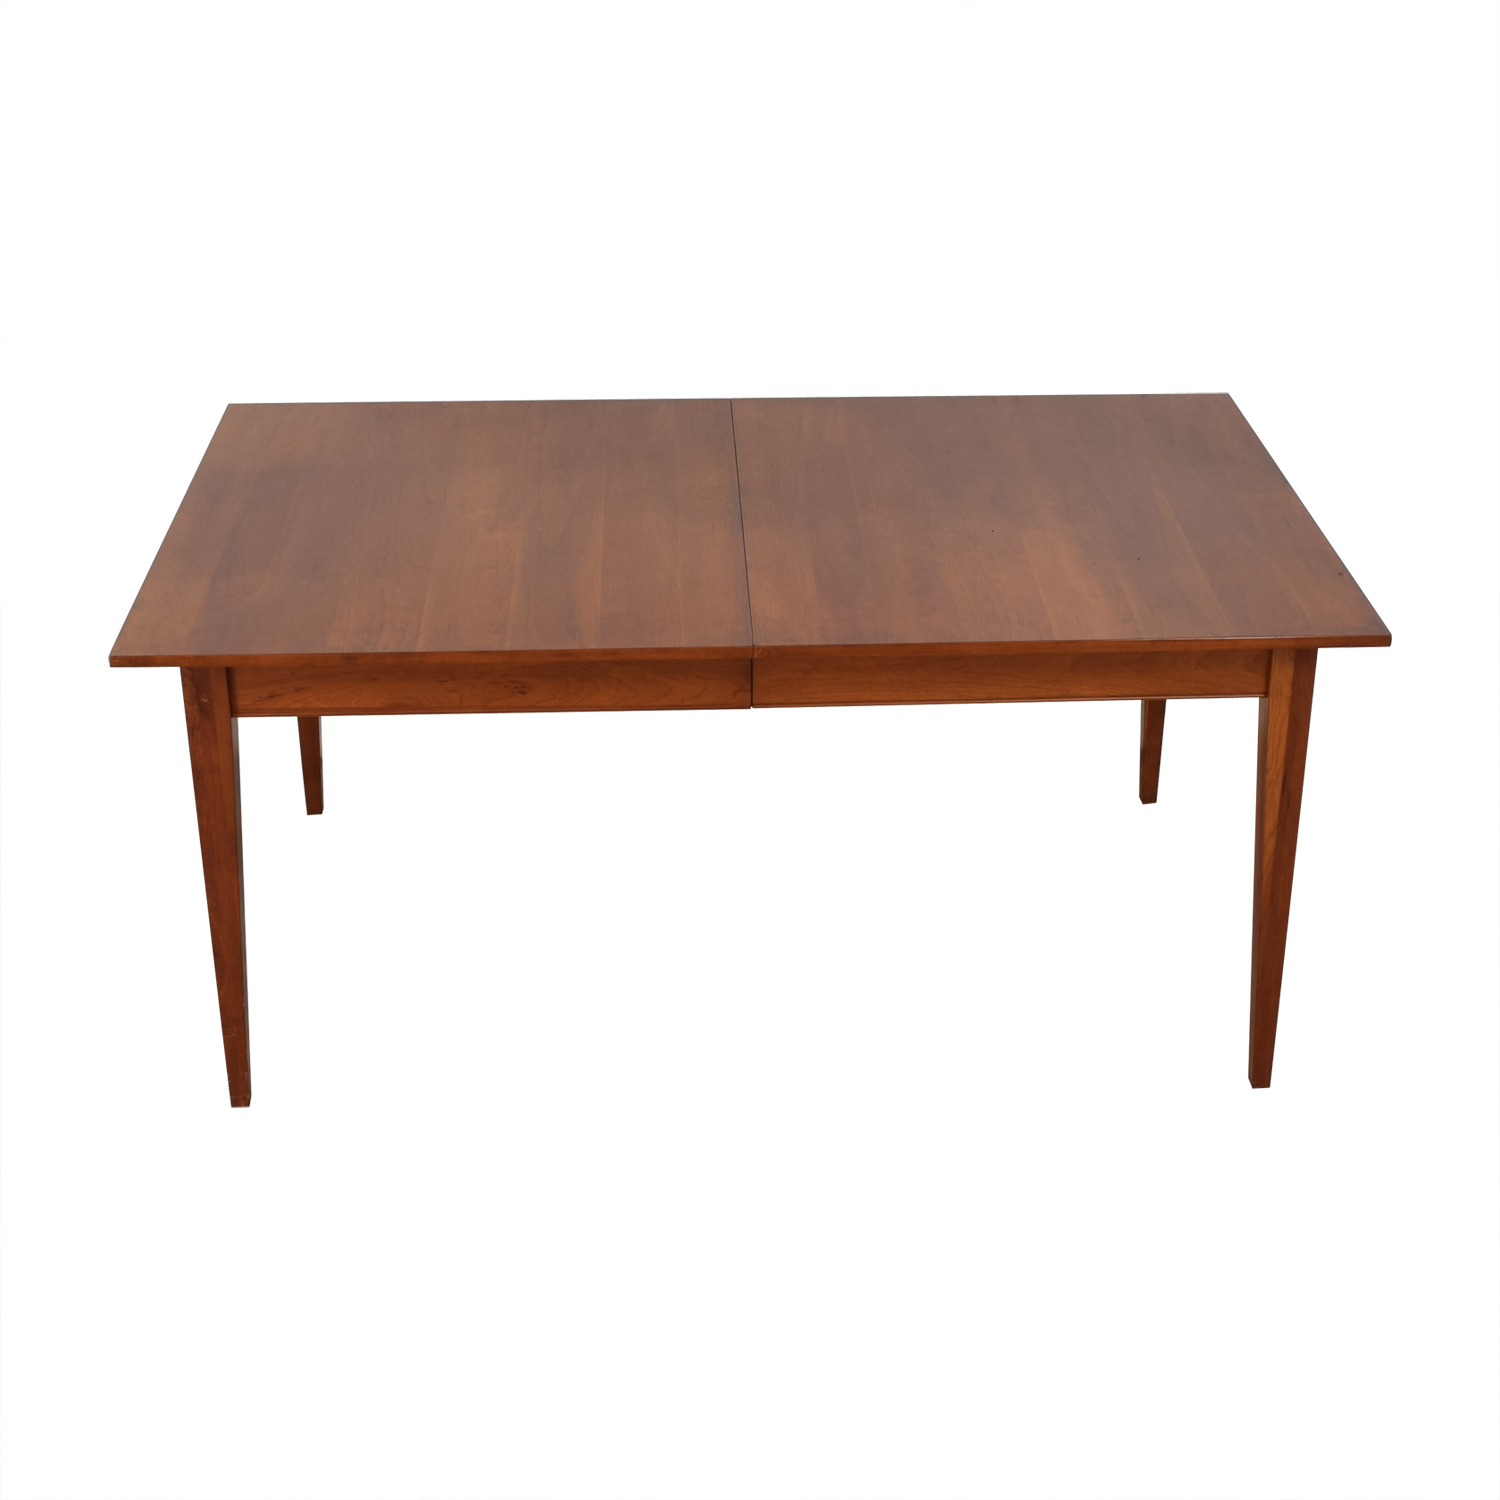 Used Ethan Allen Coffee Tables: Ethan Allen Ethan Allen New Impressions Mission